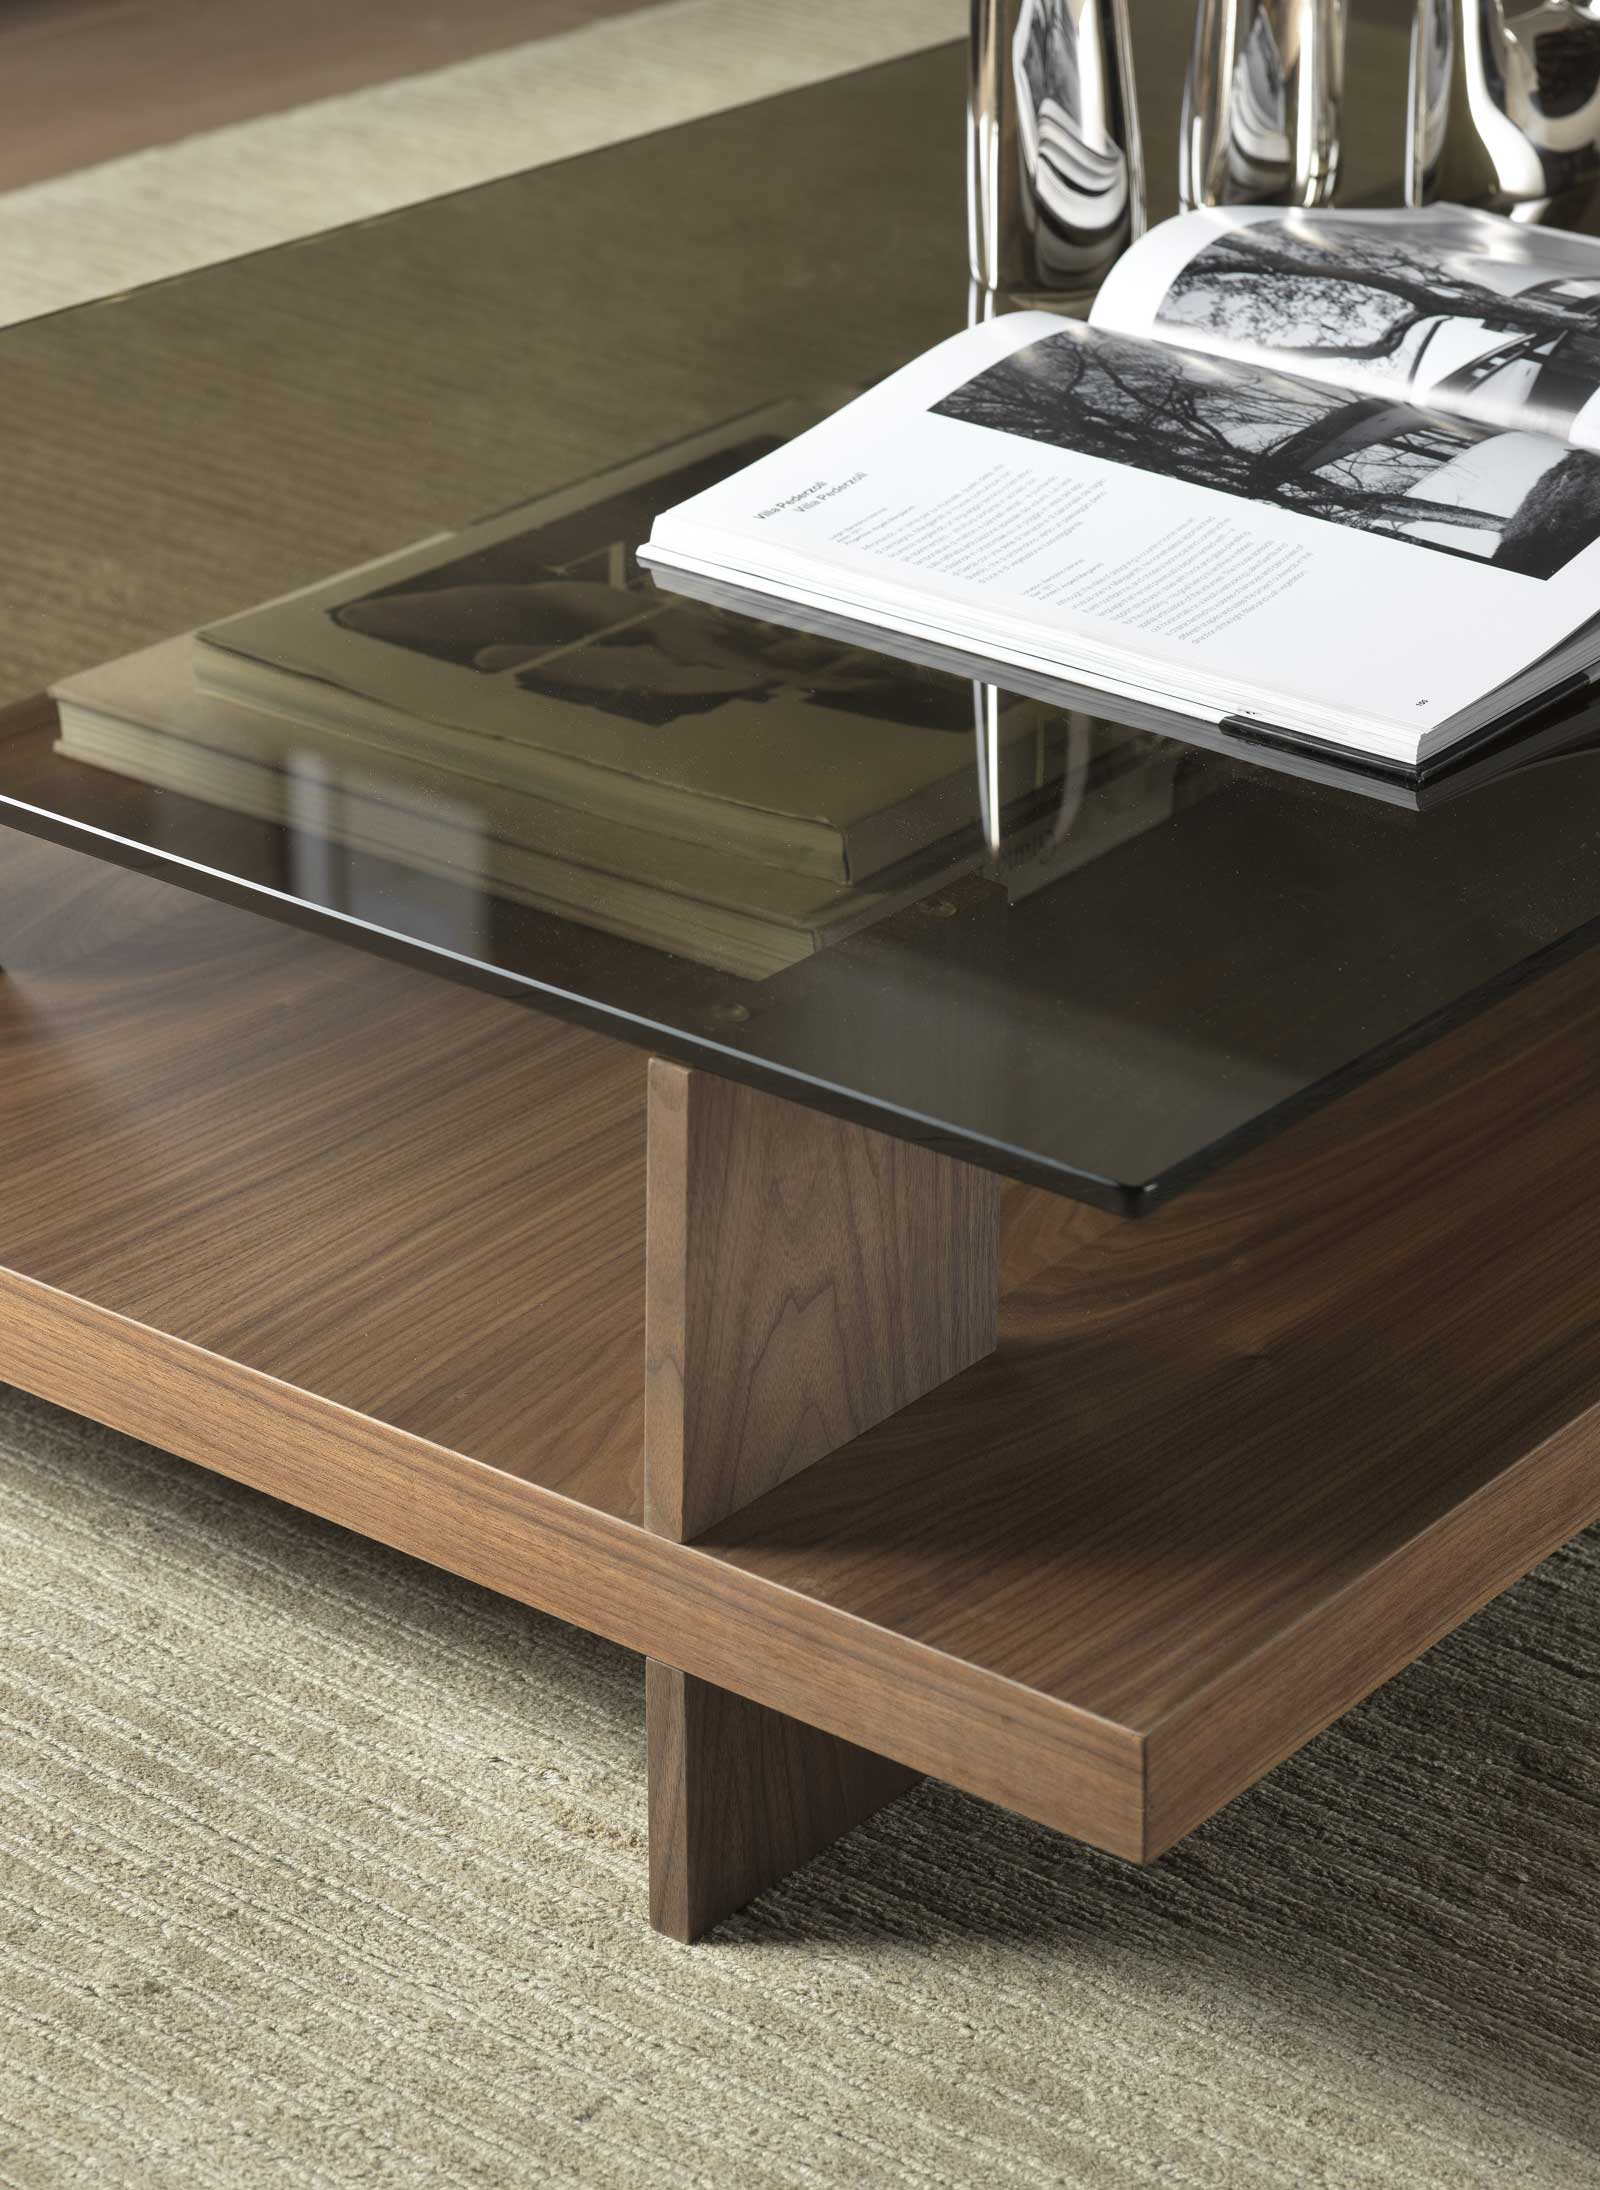 Coffee table in canaletto walnut and bronzed glass.